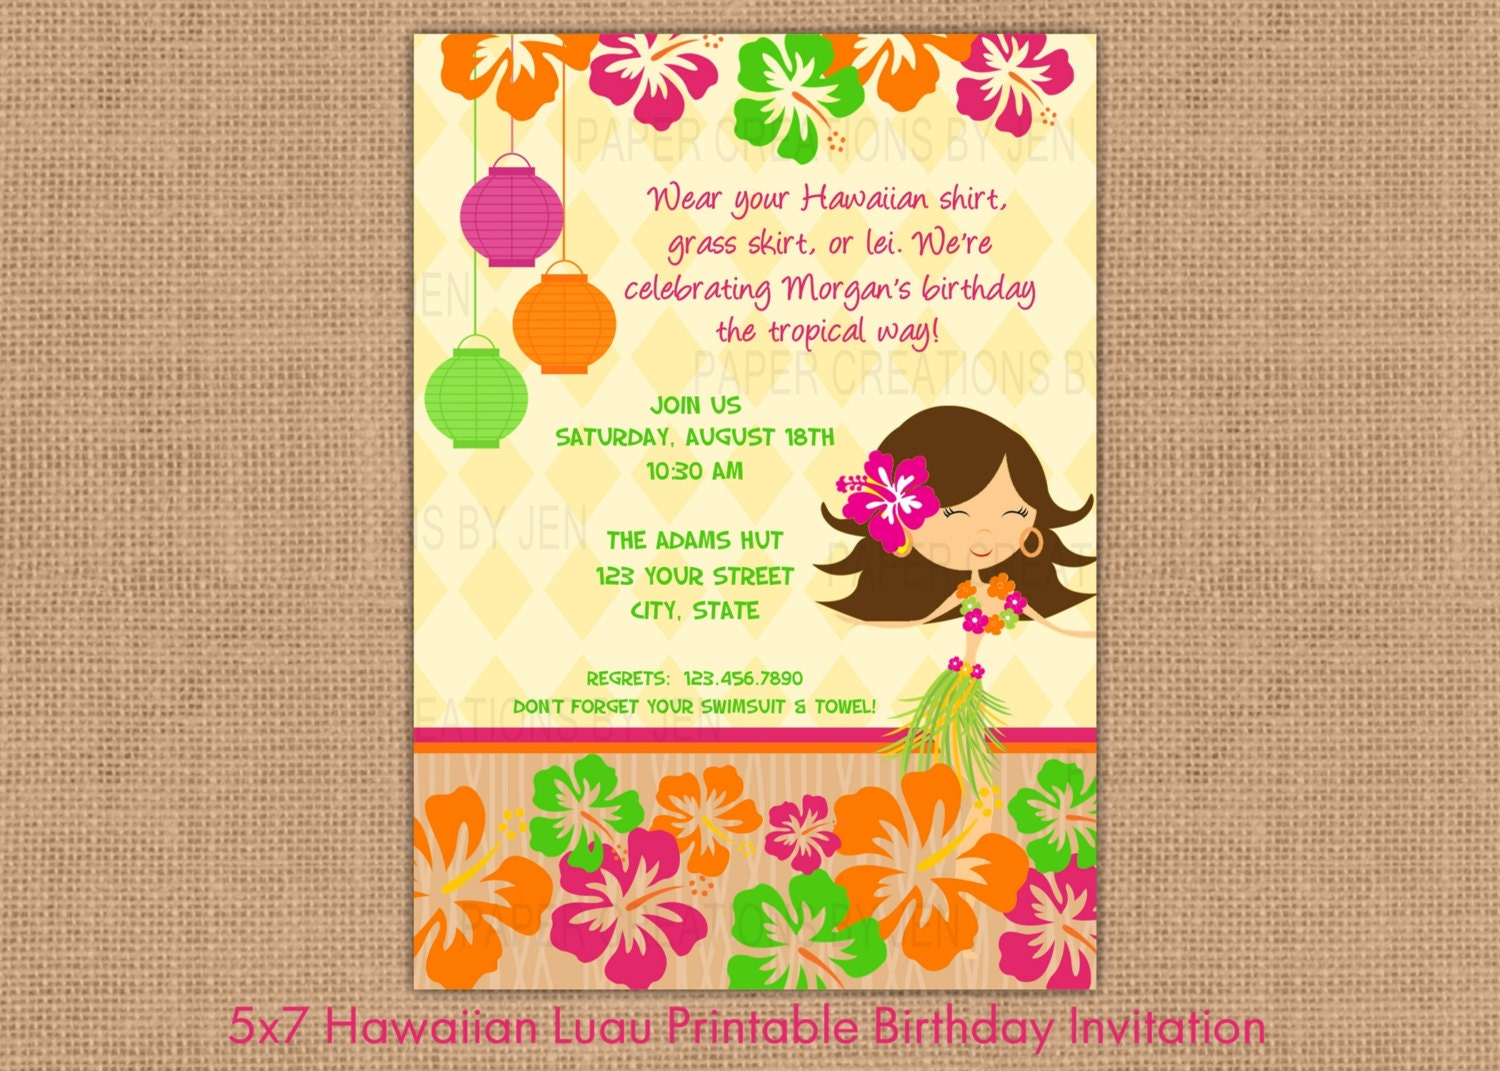 78 Best images about Hawaiian party – Hawaiian Theme Party Invitations